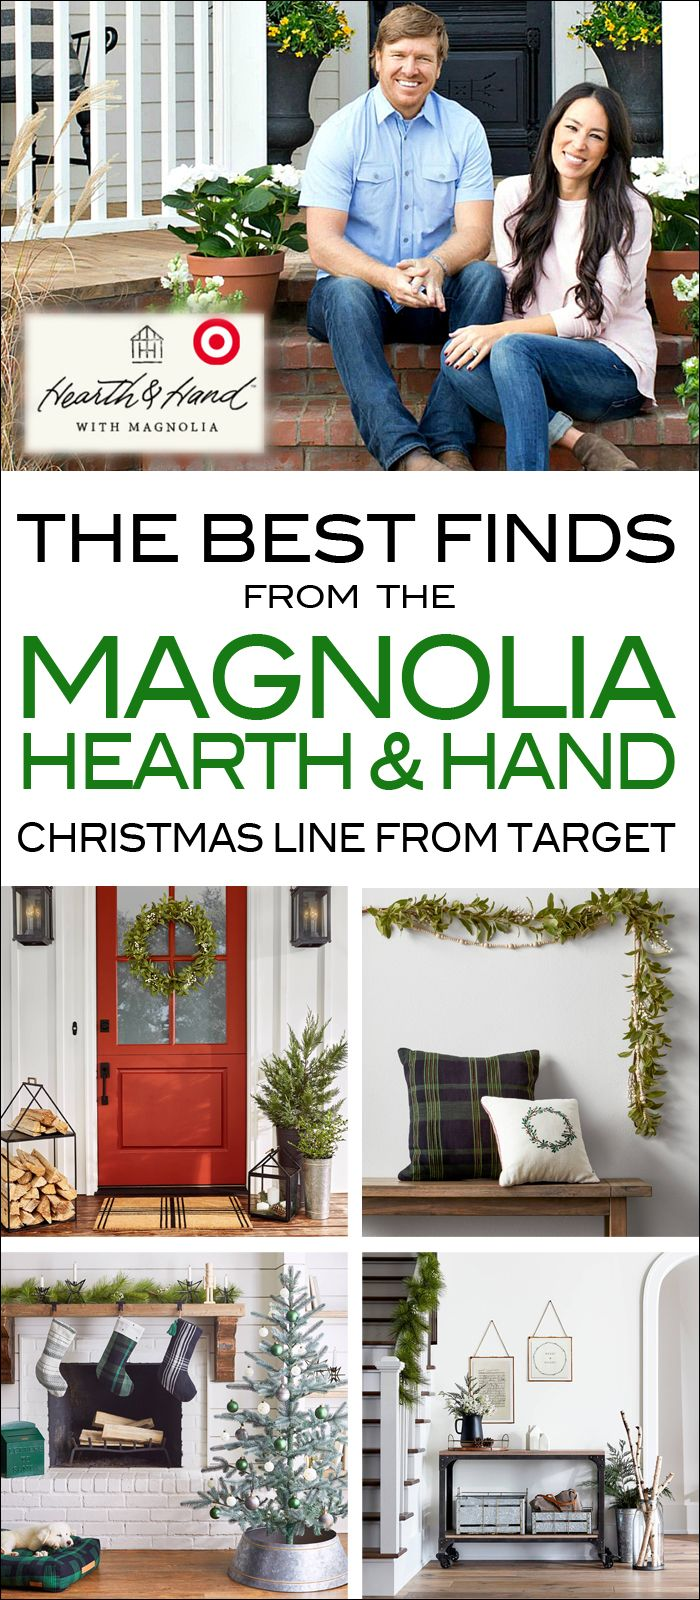 Magnolia Christmas Decor from Target - Best Finds!